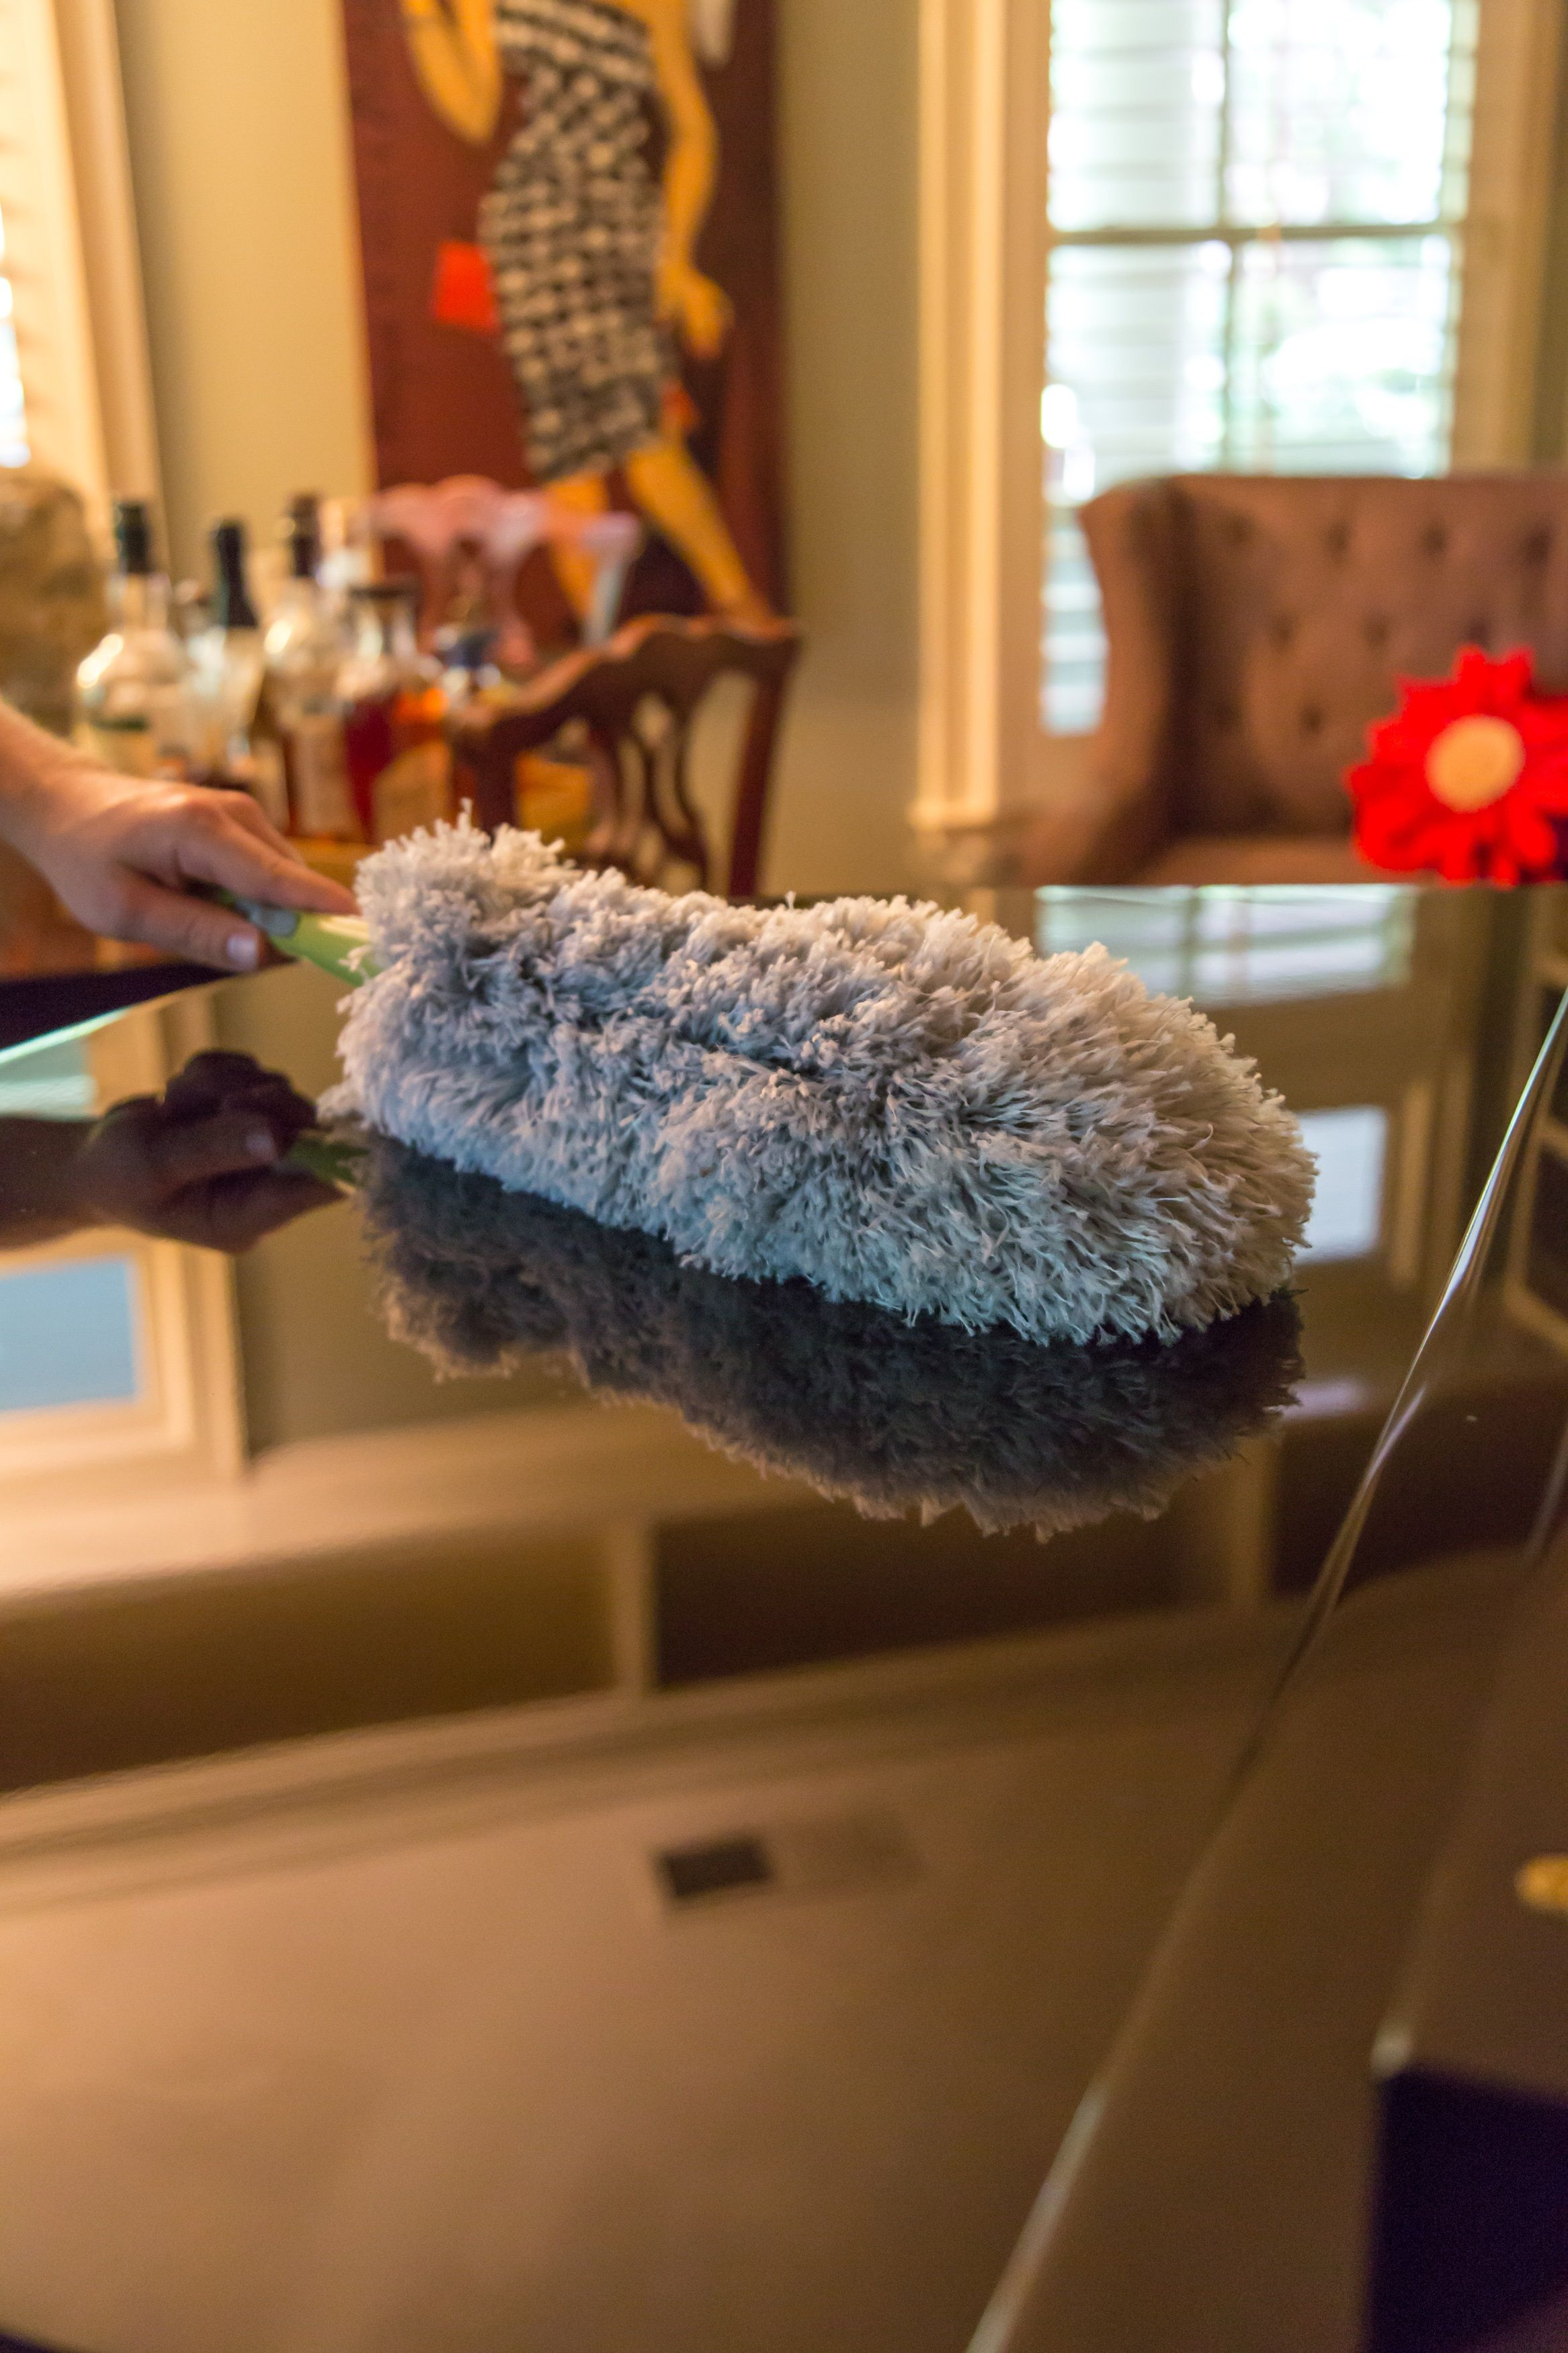 Docapole Microfiber Dusting And Cleaning Attachment Cleaning Surface Microfiber Cleaner Microfiber